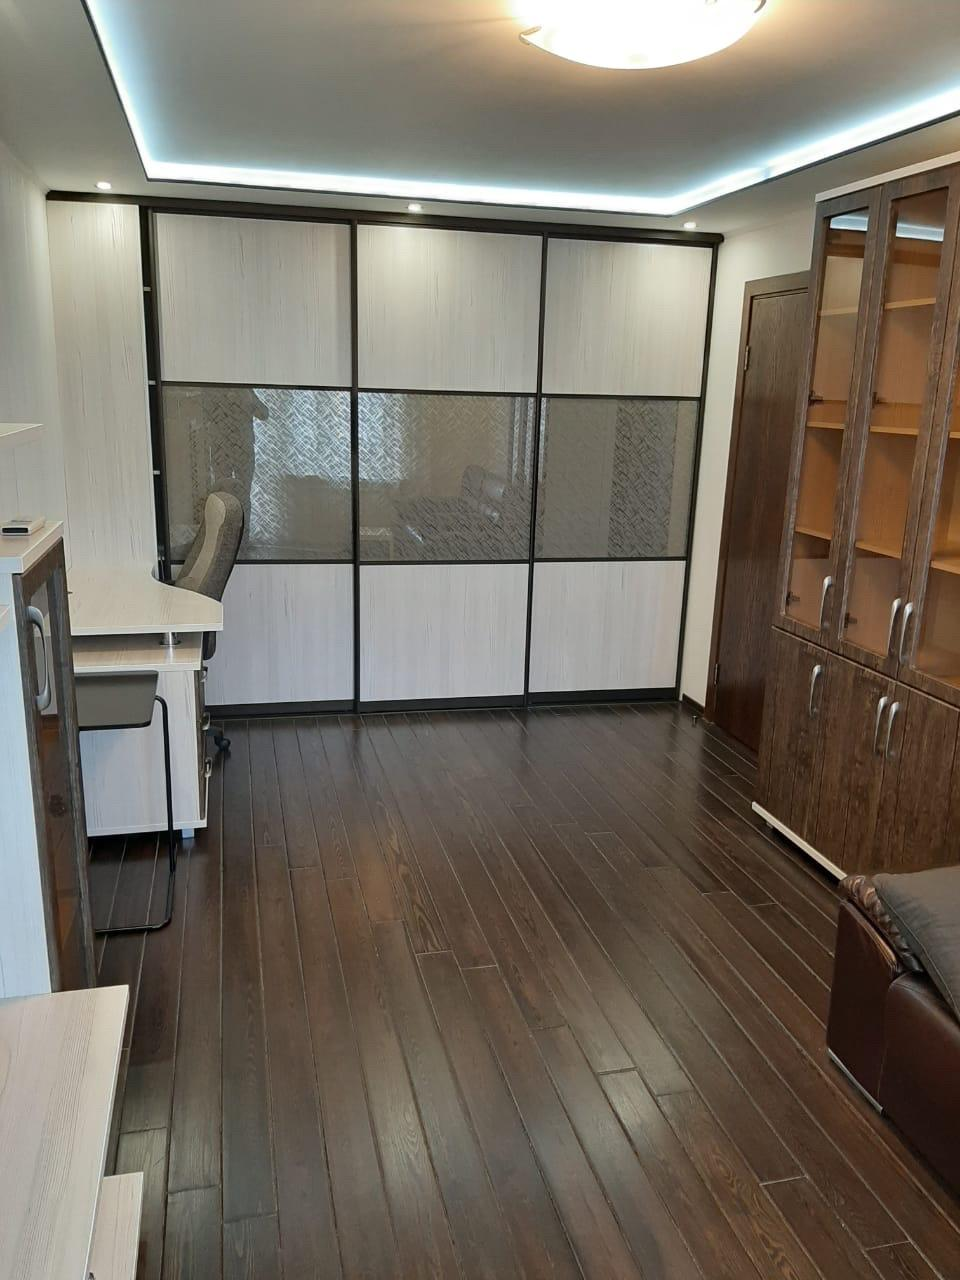 Apartment, 2 rooms, 48 m2 in Moscow 89999089562 buy 1